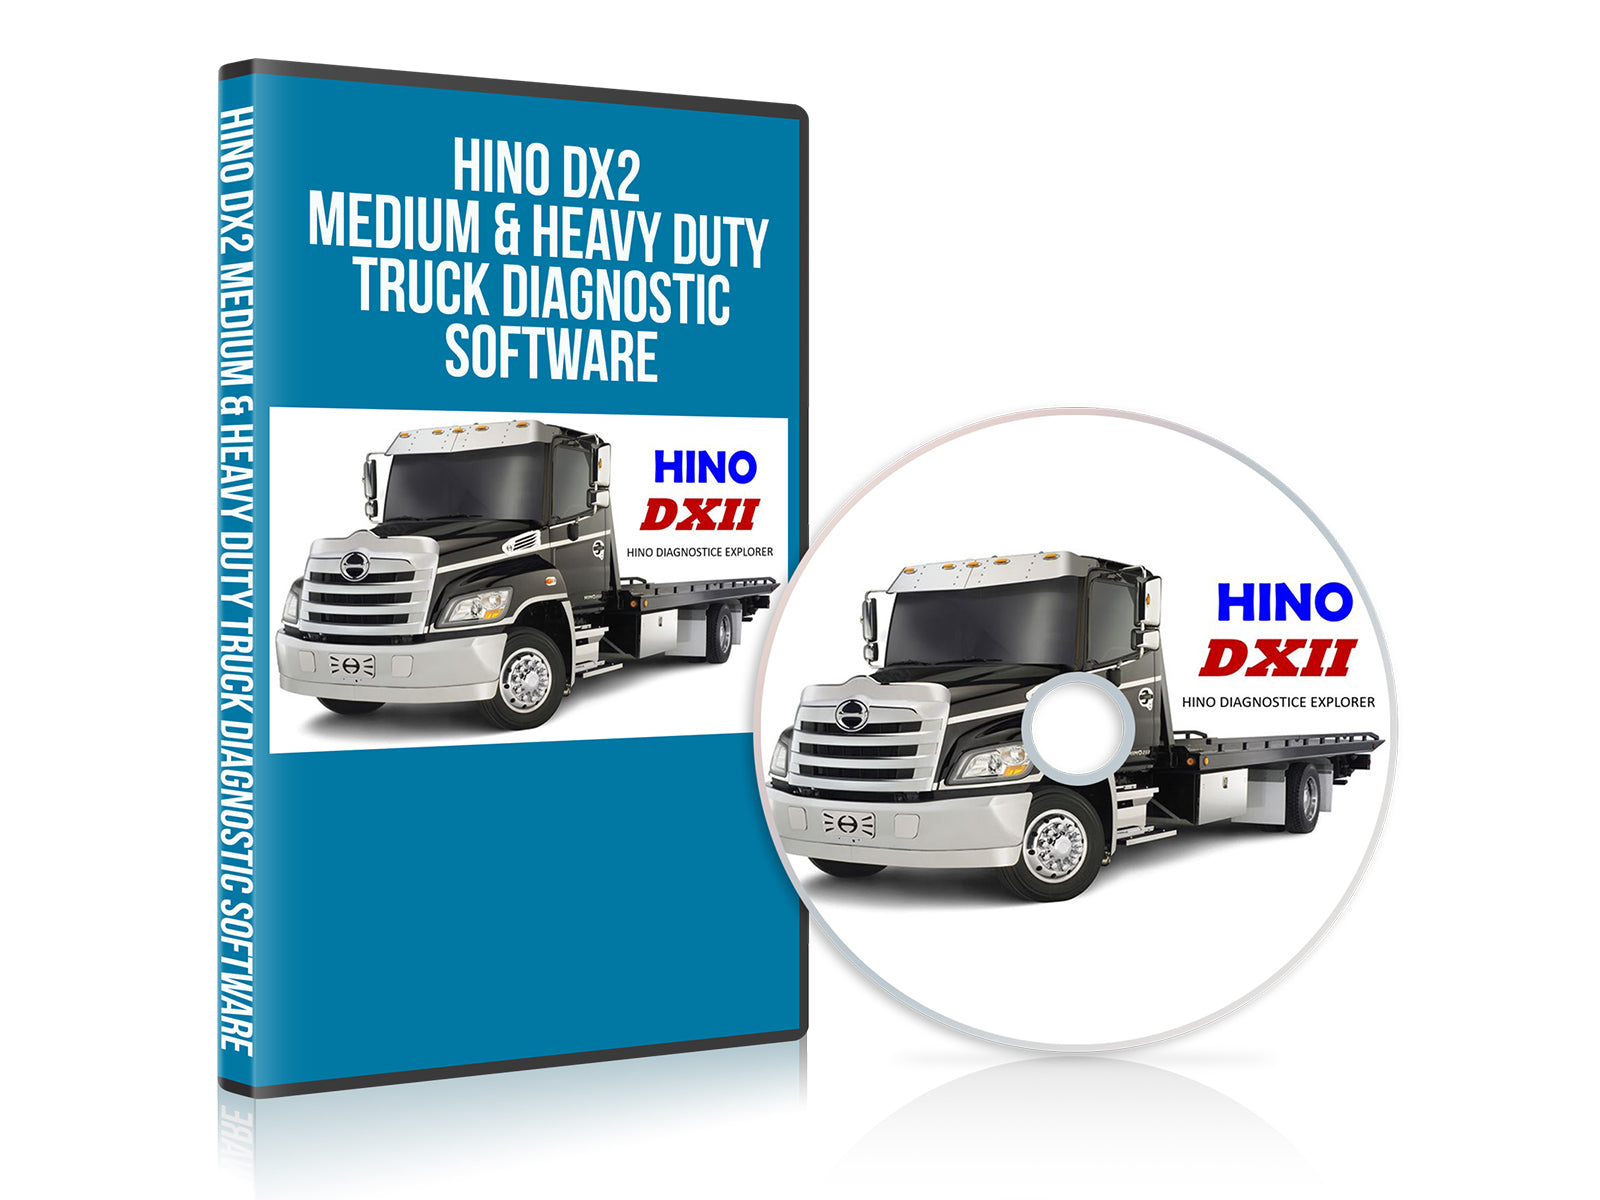 HINO DX2 Medium & Heavy Duty Truck Diagnostic Software